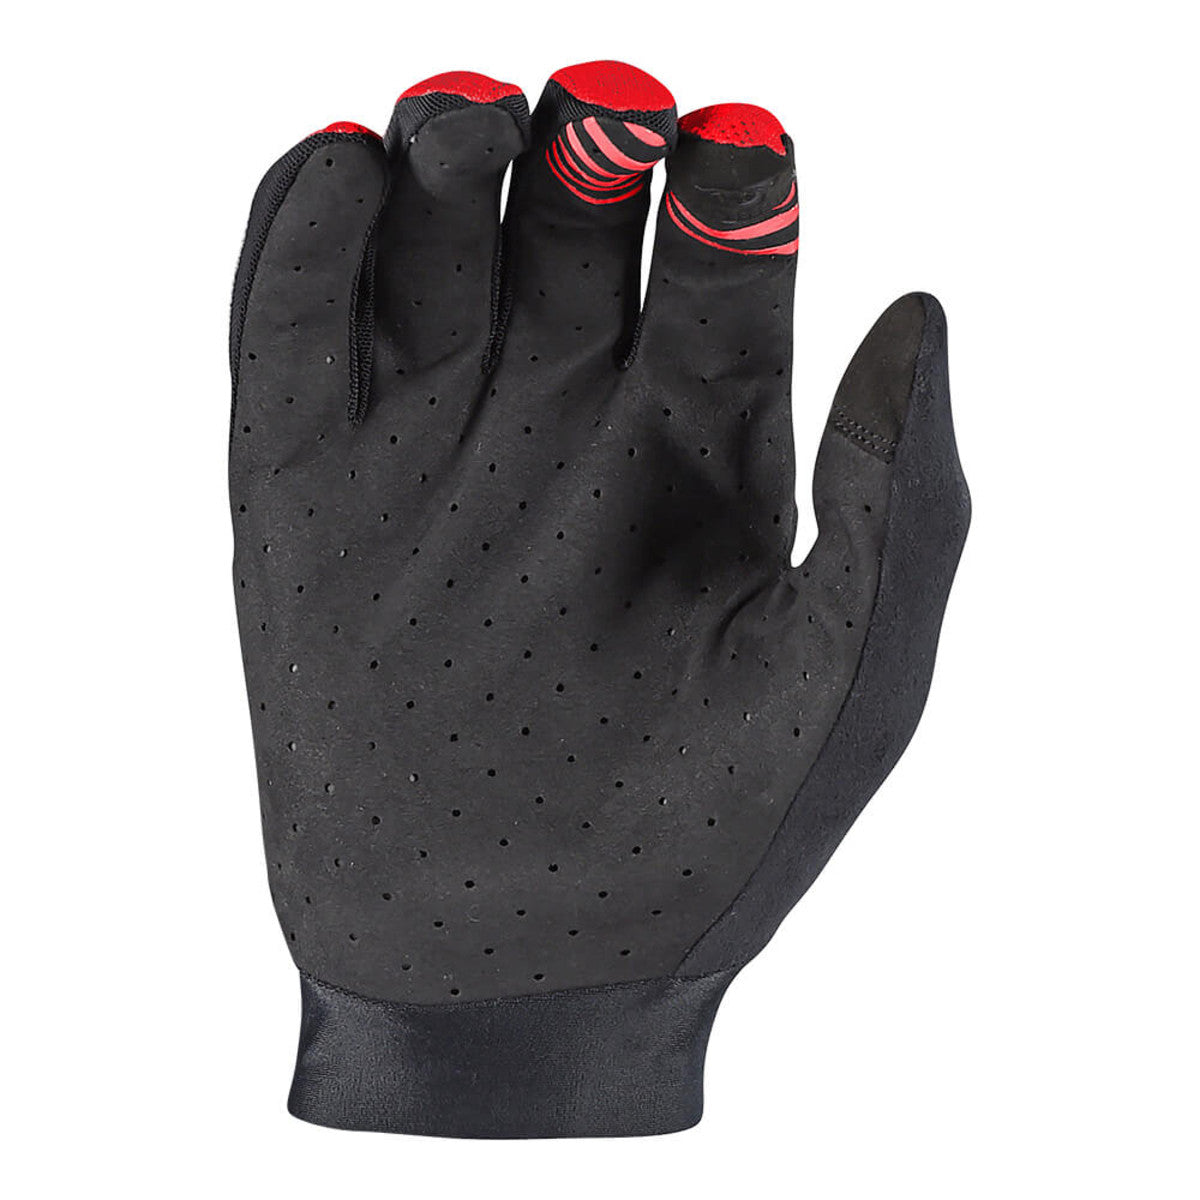 2018 Ace 2.0 Women's Gloves - Red by Troy Lee Designs